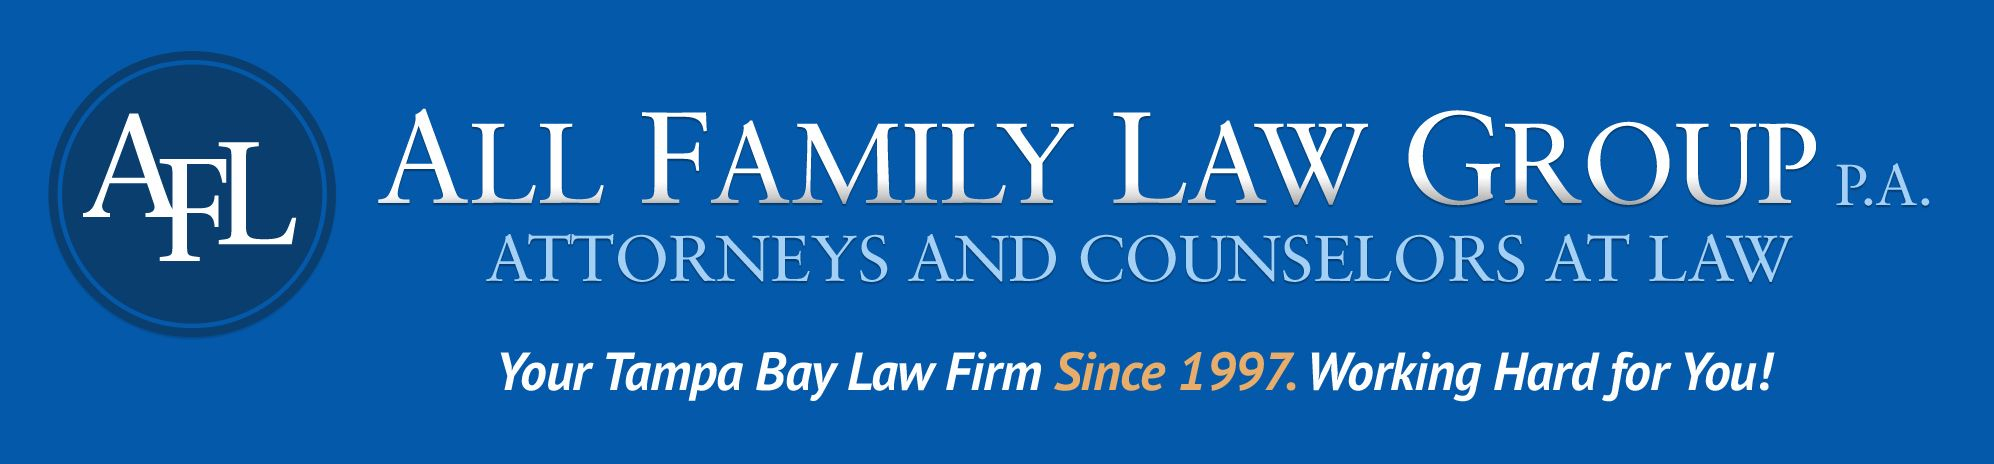 Tampa Divorce, Family, Adoption, Criminal Law Attorneys